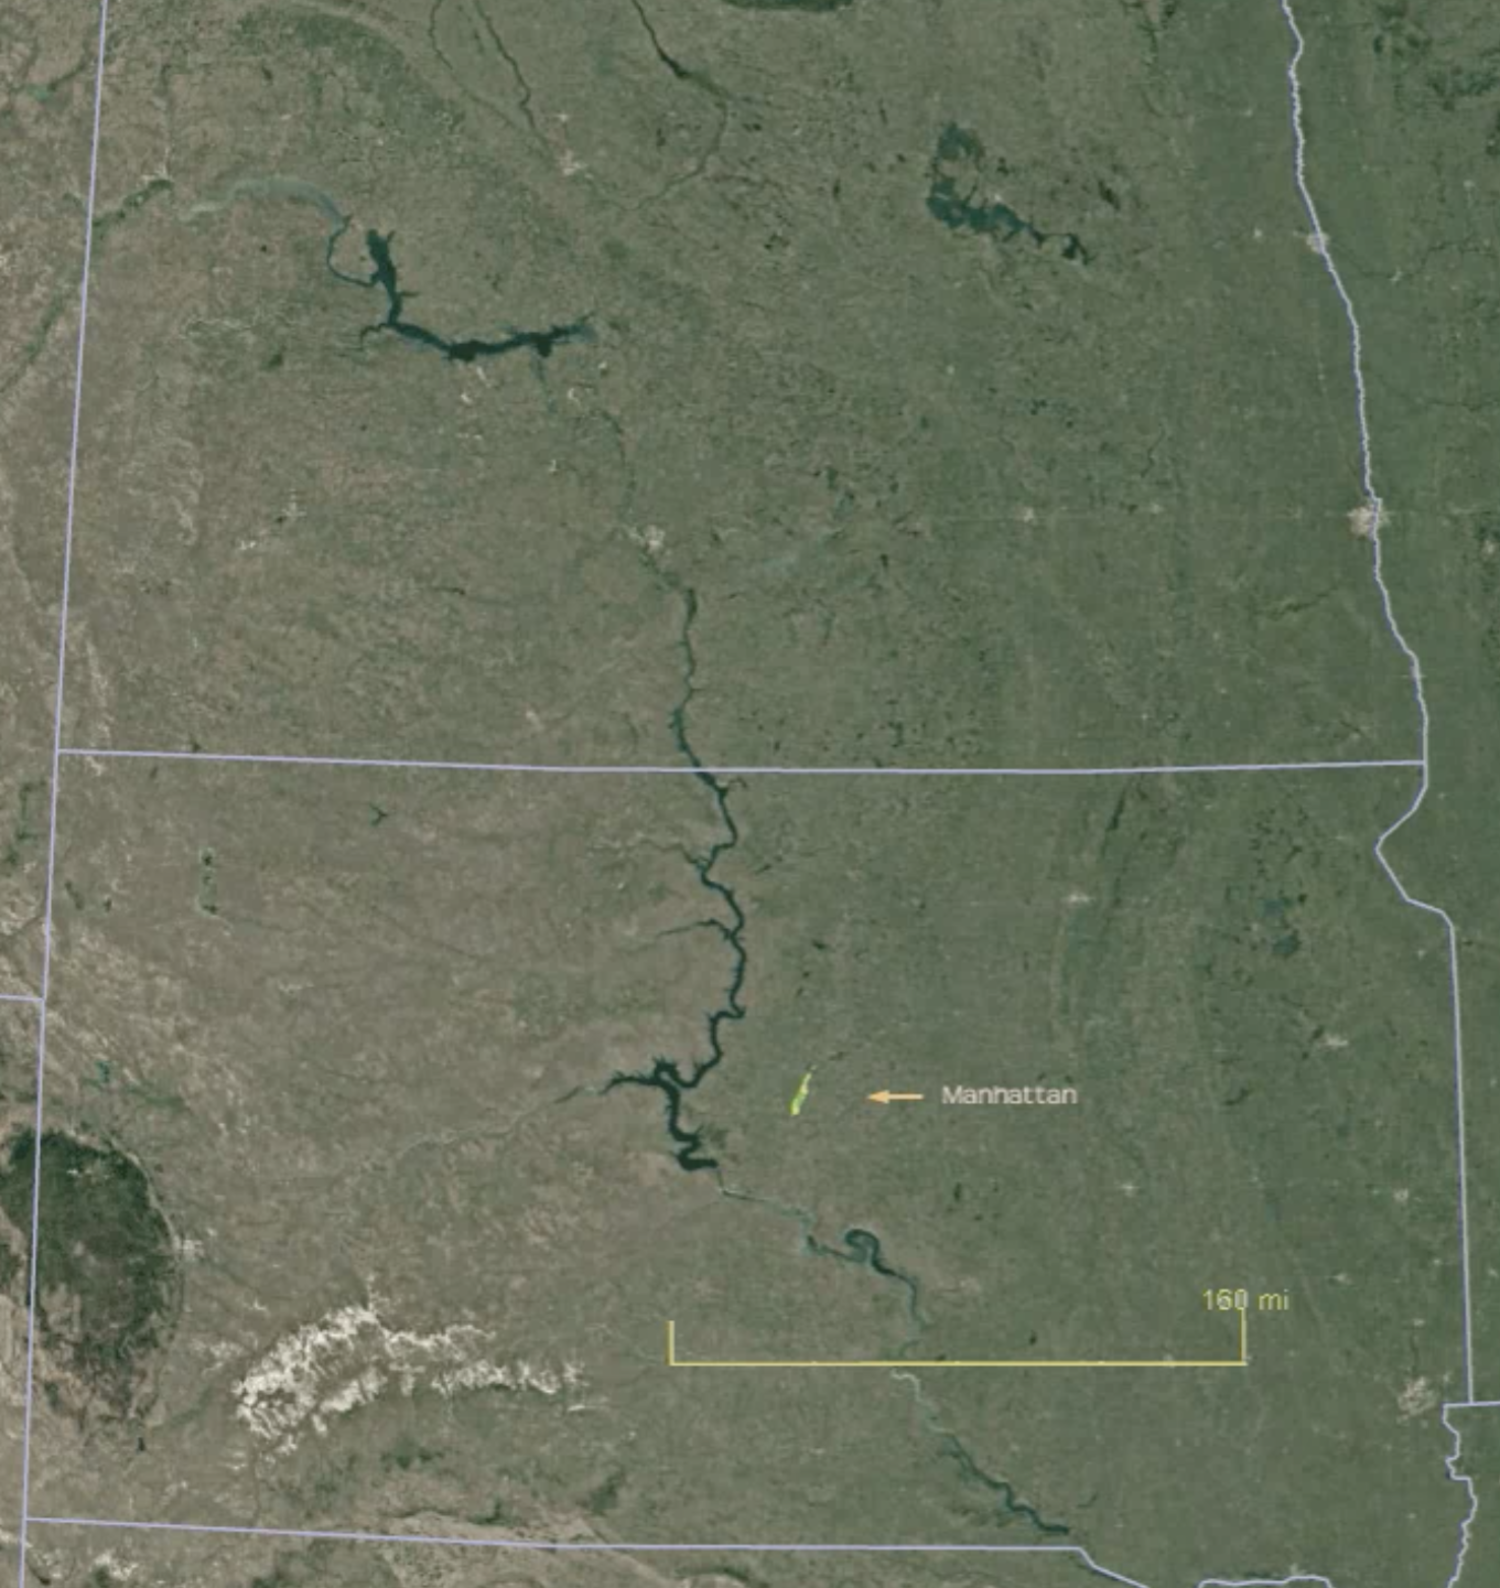 Comparing the Dakotas to Manhattan - the other view